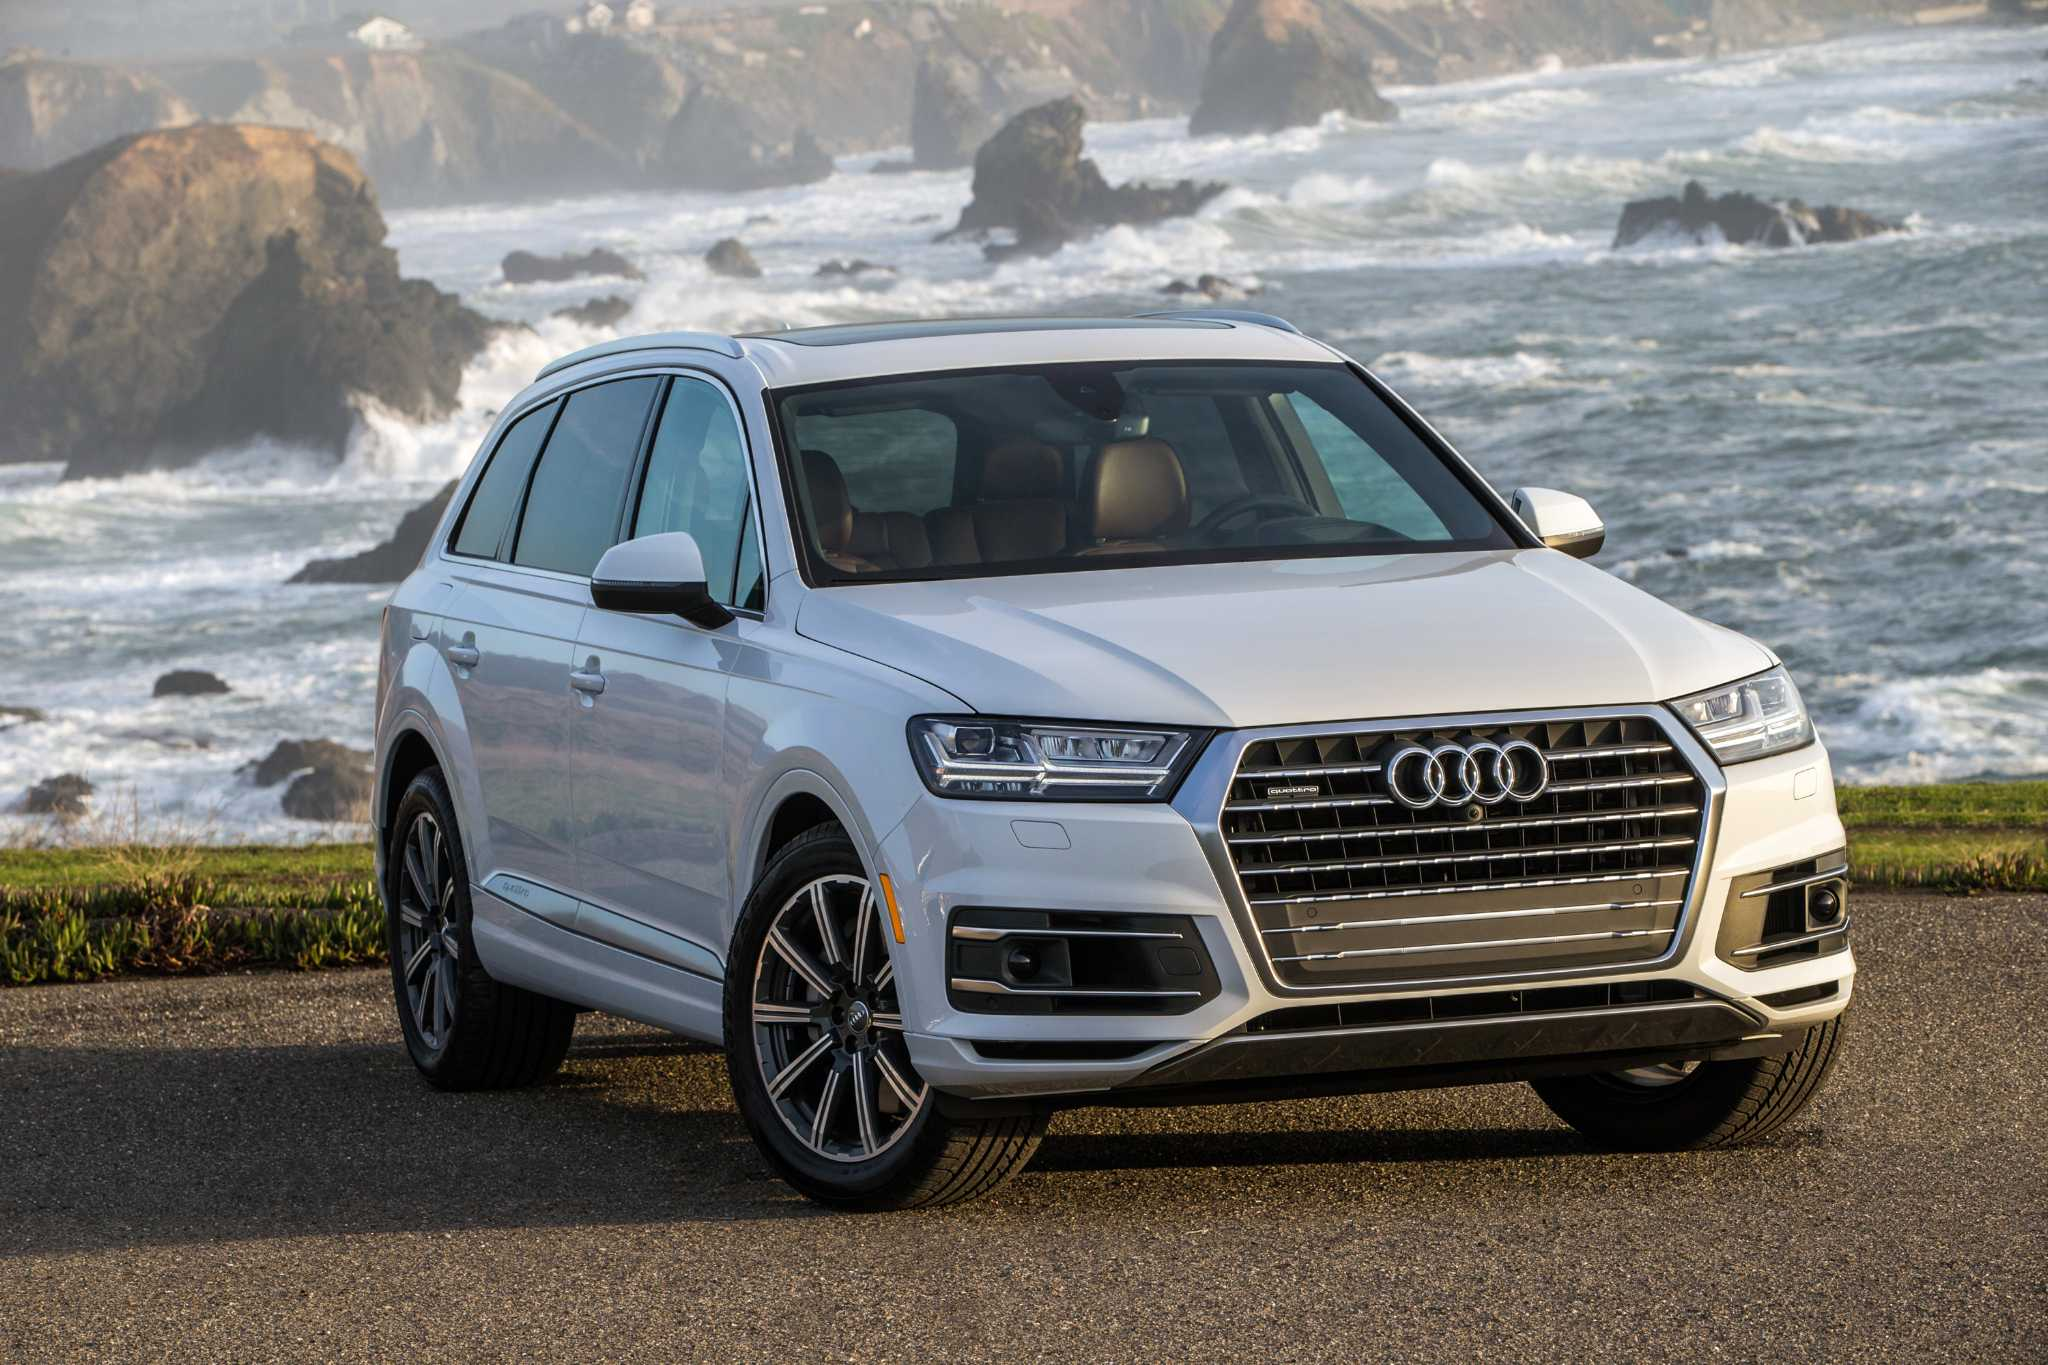 2017 Audi Q7 packs impressive value, performance